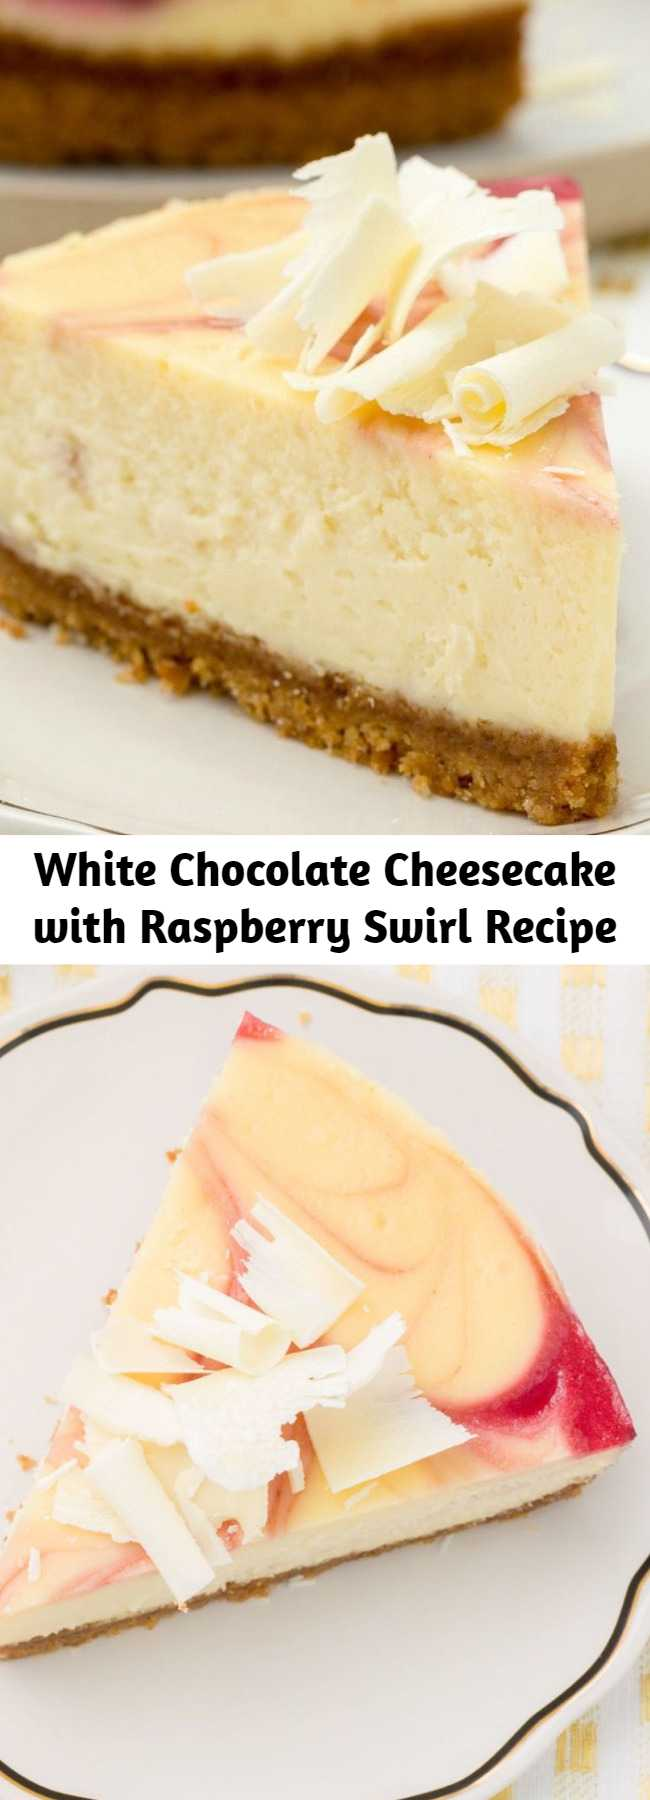 White Chocolate Cheesecake with Raspberry Swirl Recipe - With a decadent raspberry swirl, this cheesecake looks as decadent as it tastes.